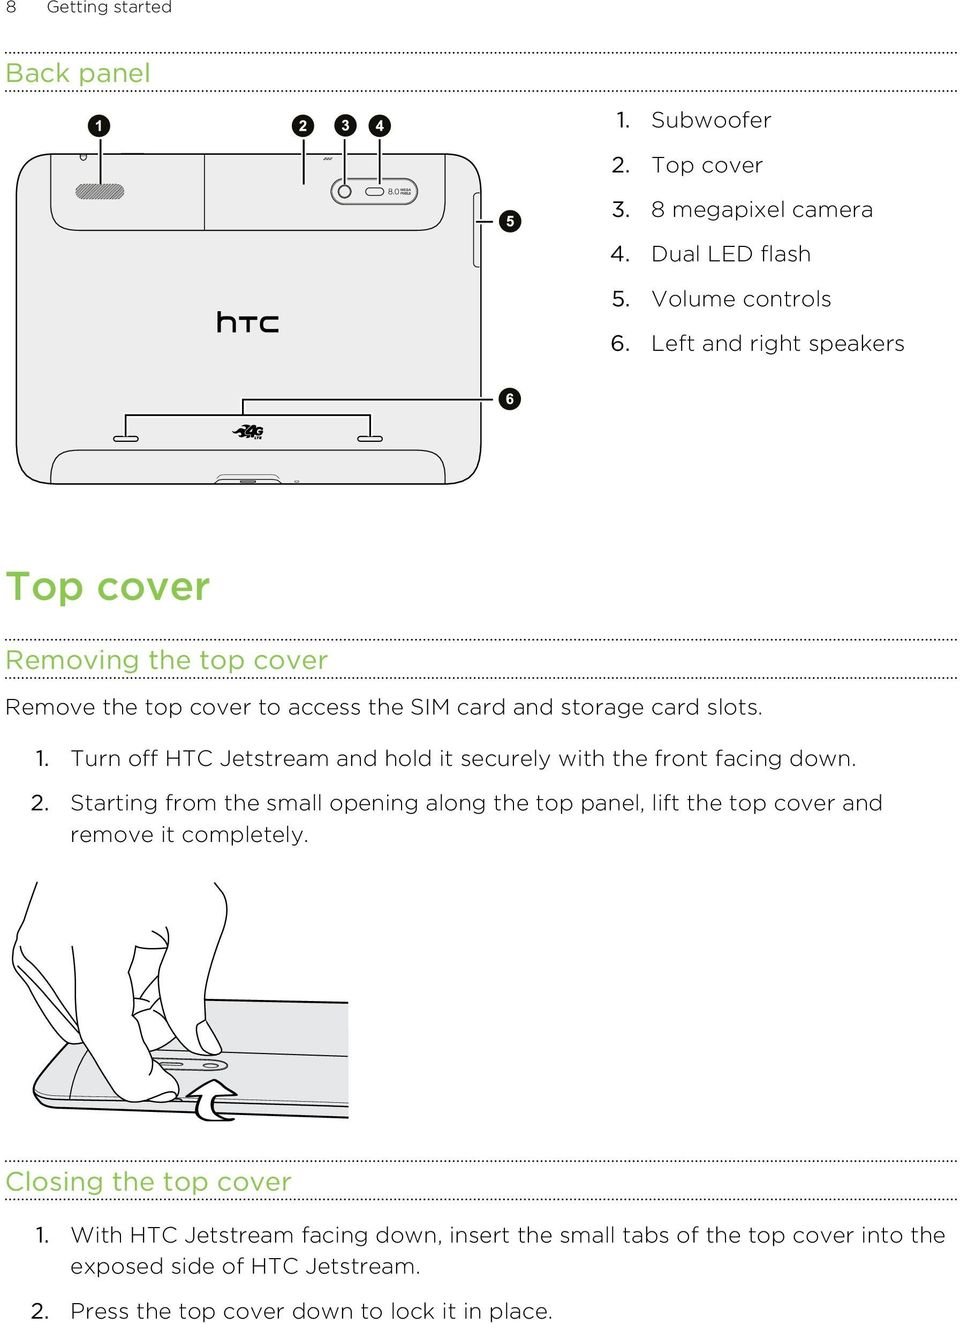 Turn off HTC Jetstream and hold it securely with the front facing down. 2.